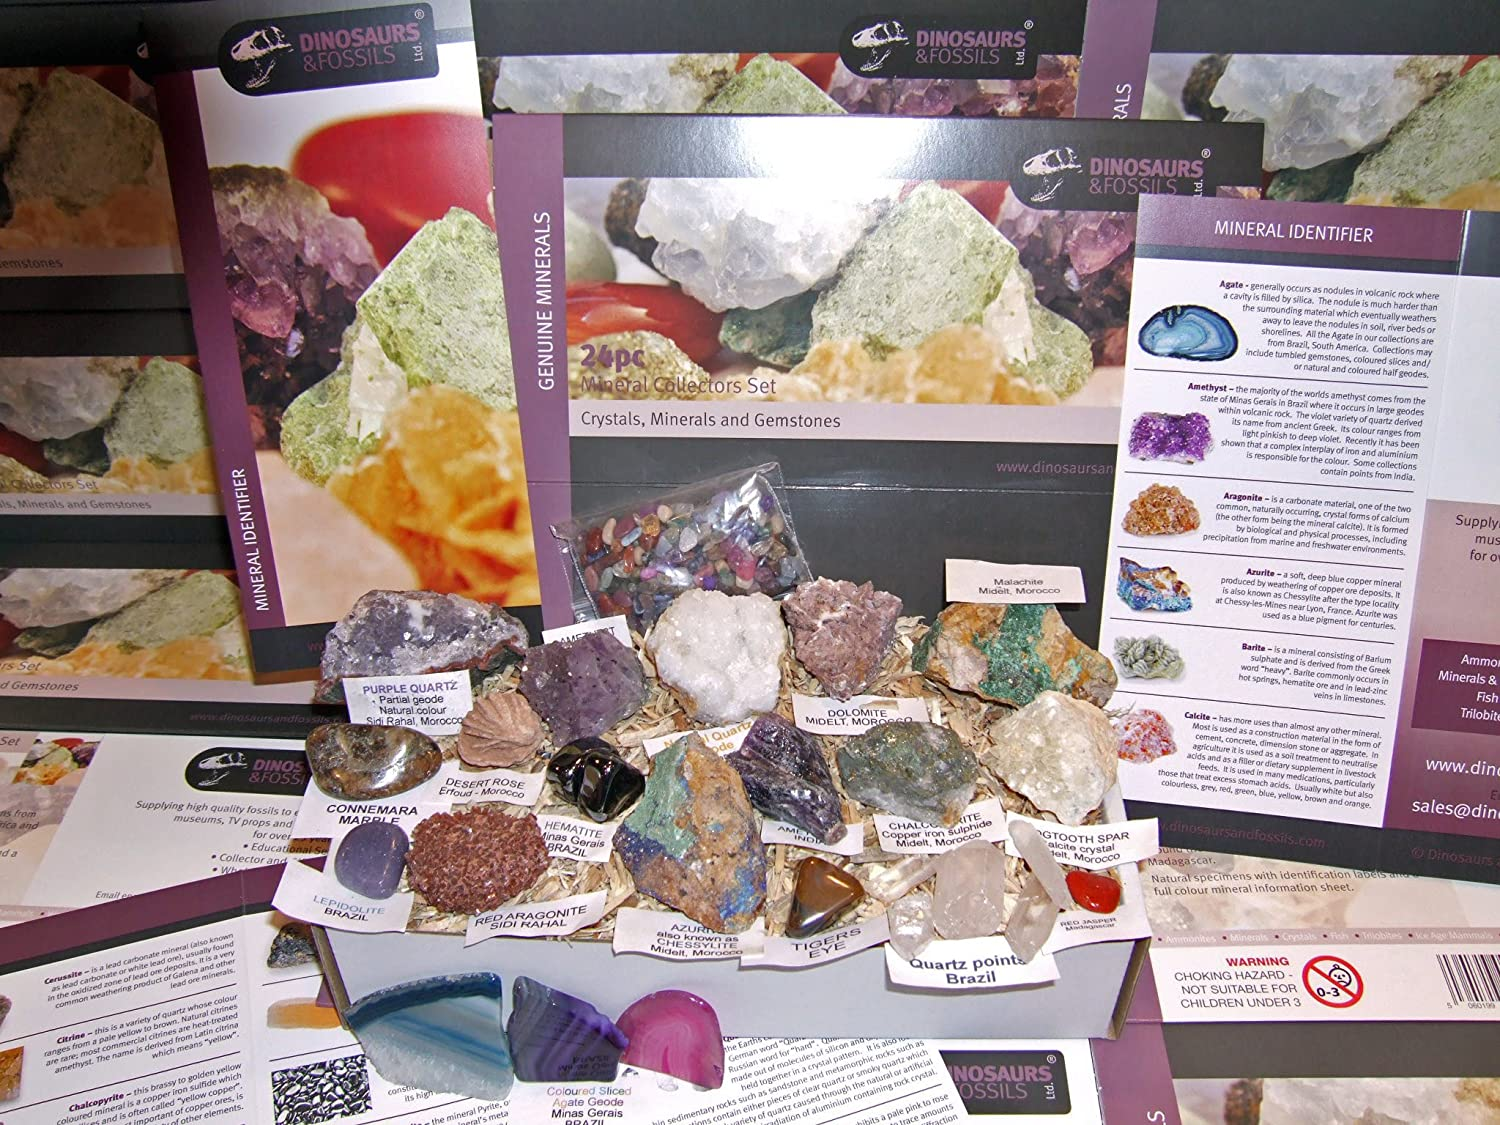 ... LARGE GIFT COLLECTION - Rocks, Crystals, Minerals and Gemstone NEW 24pc  Collection Set 5 of 5 - Children or adults gift set: Amazon.co.uk: Toys &  Games